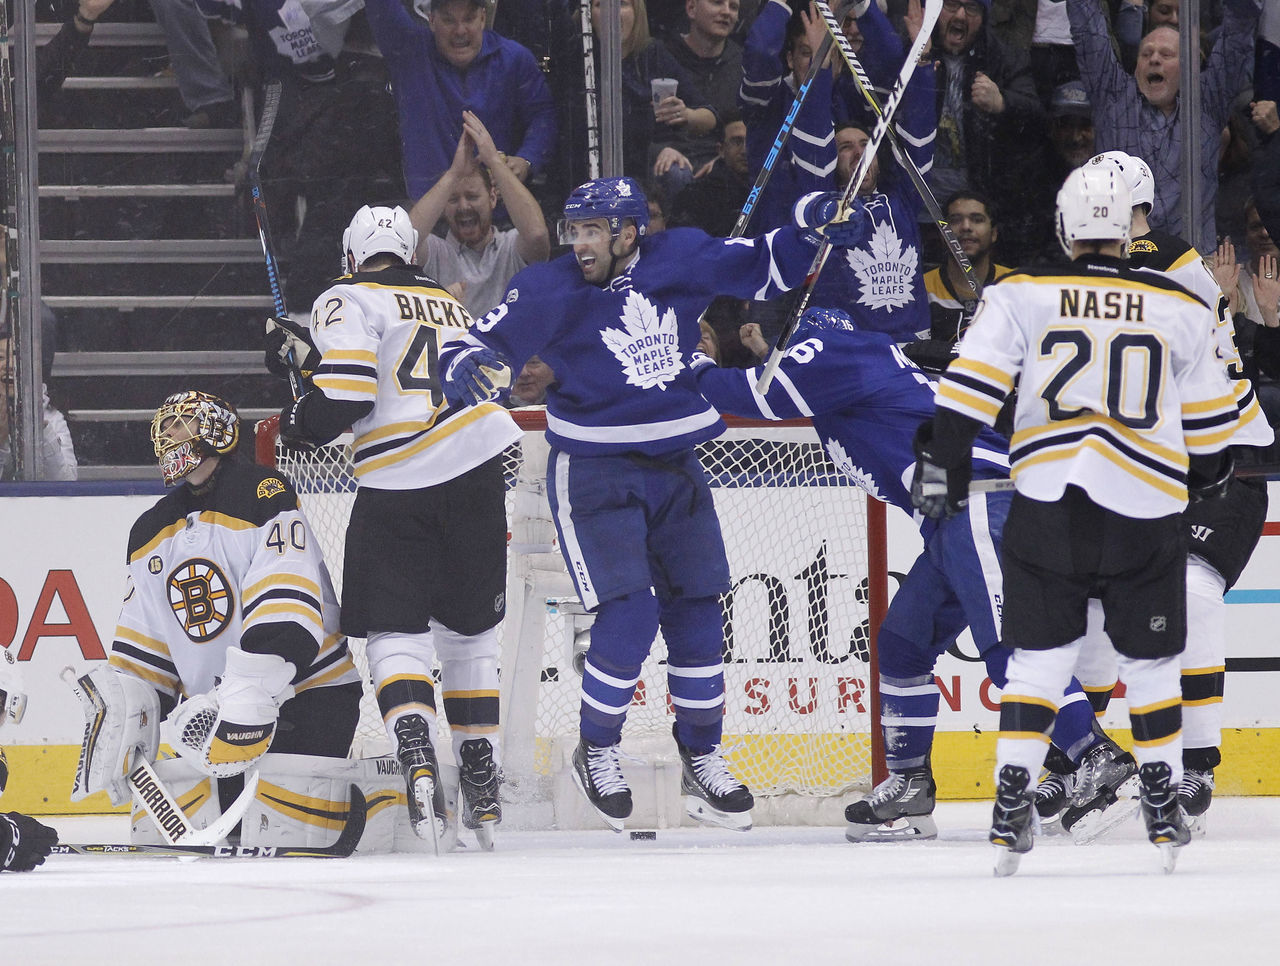 Cropped 2017 03 21t024331z 460872117 nocid rtrmadp 3 nhl boston bruins at toronto maple leafs